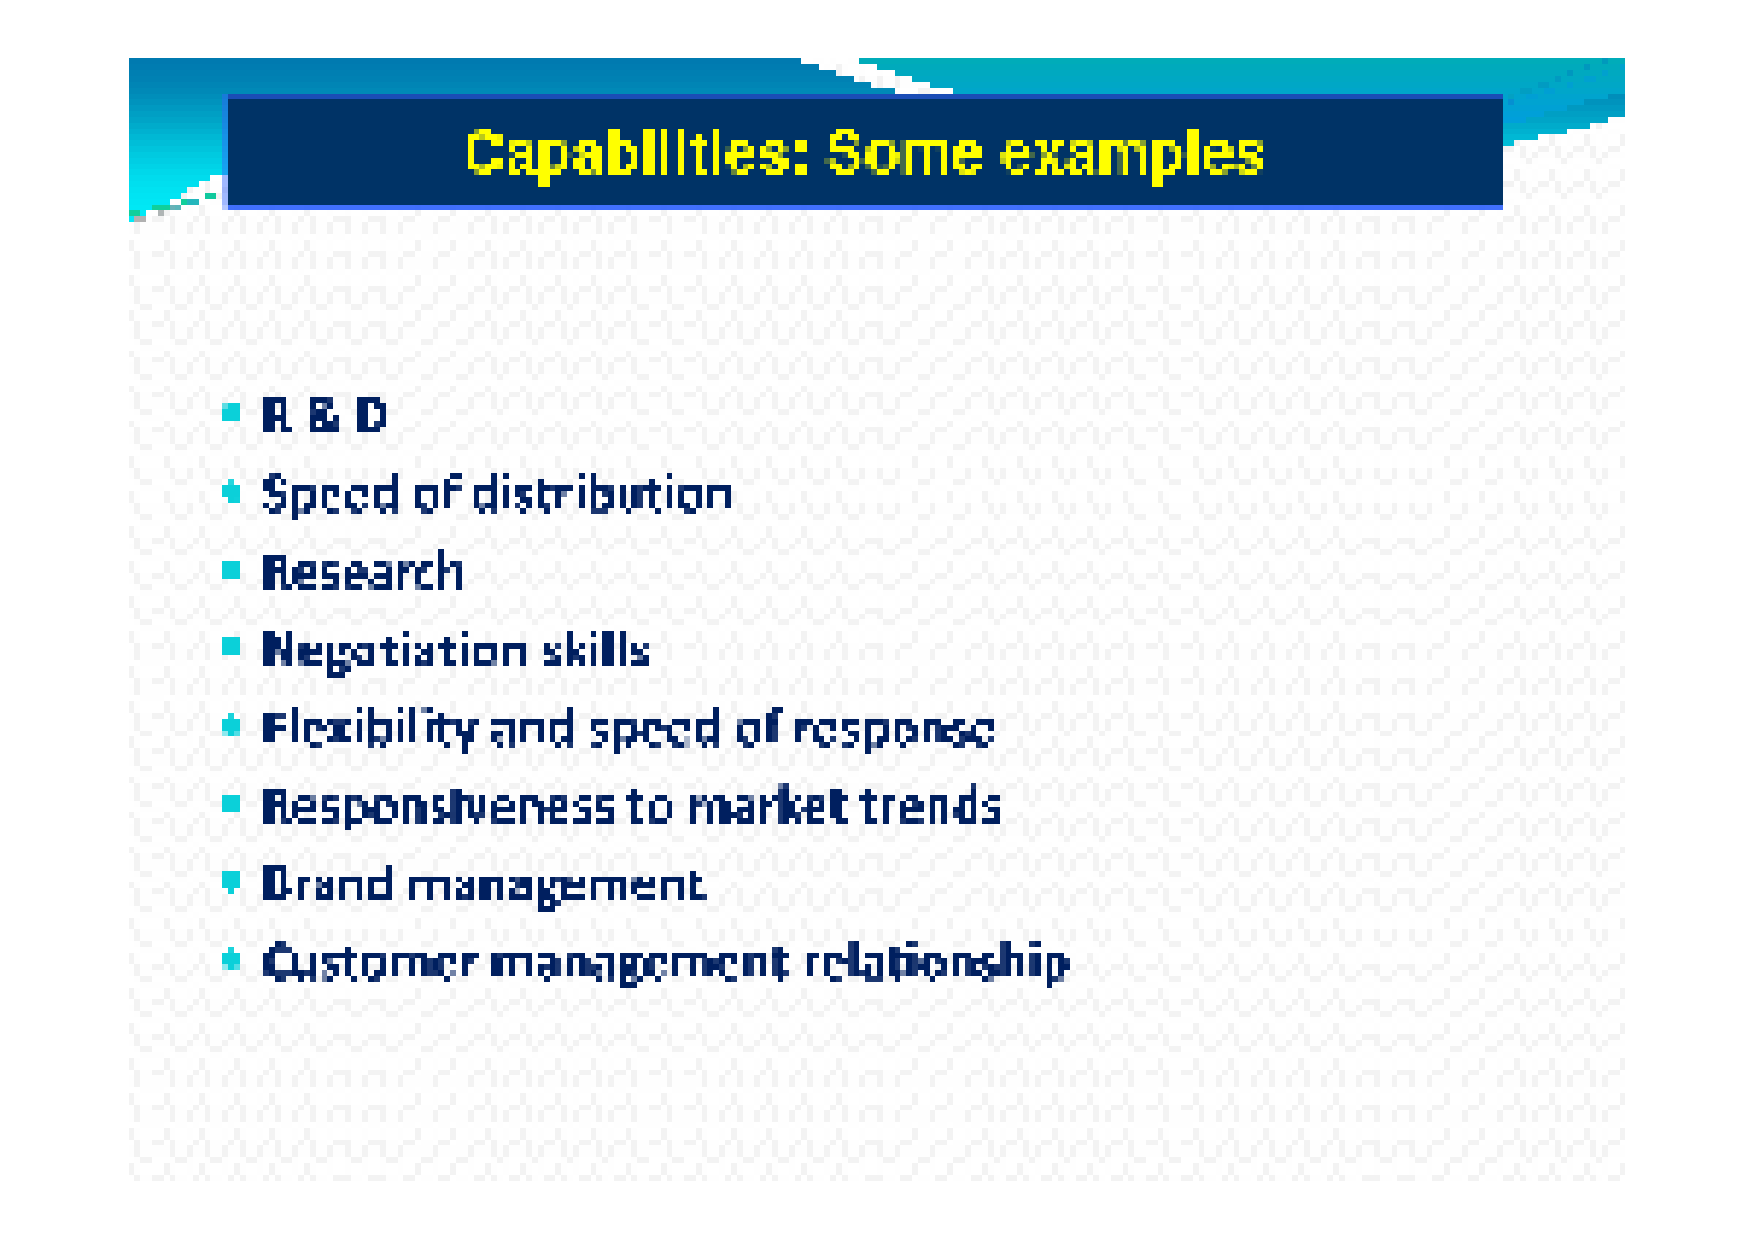 dell resources and capabilities Intangible assets are often overlooked, but they are many times the only source of sustainable competitive advantage (ie brand, technology, information, culture, etc) taking the lead from military campaigns in which the goal is to pitch strength against weakness(1.